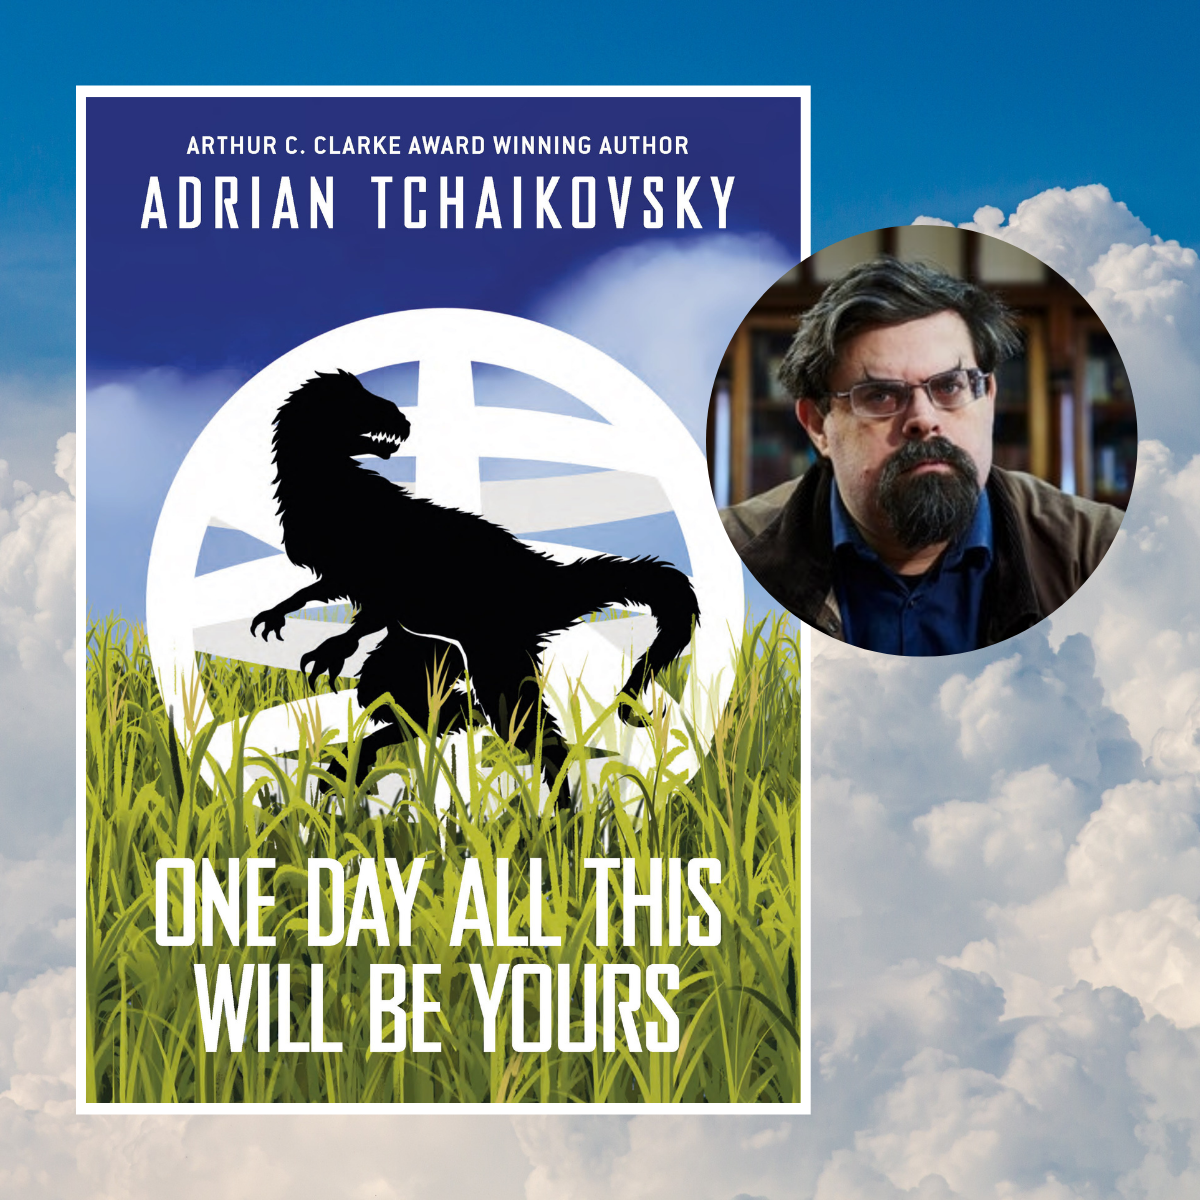 New Adrian Tchaikovsky novella One Day All This Will Be Yours coming in March 2021